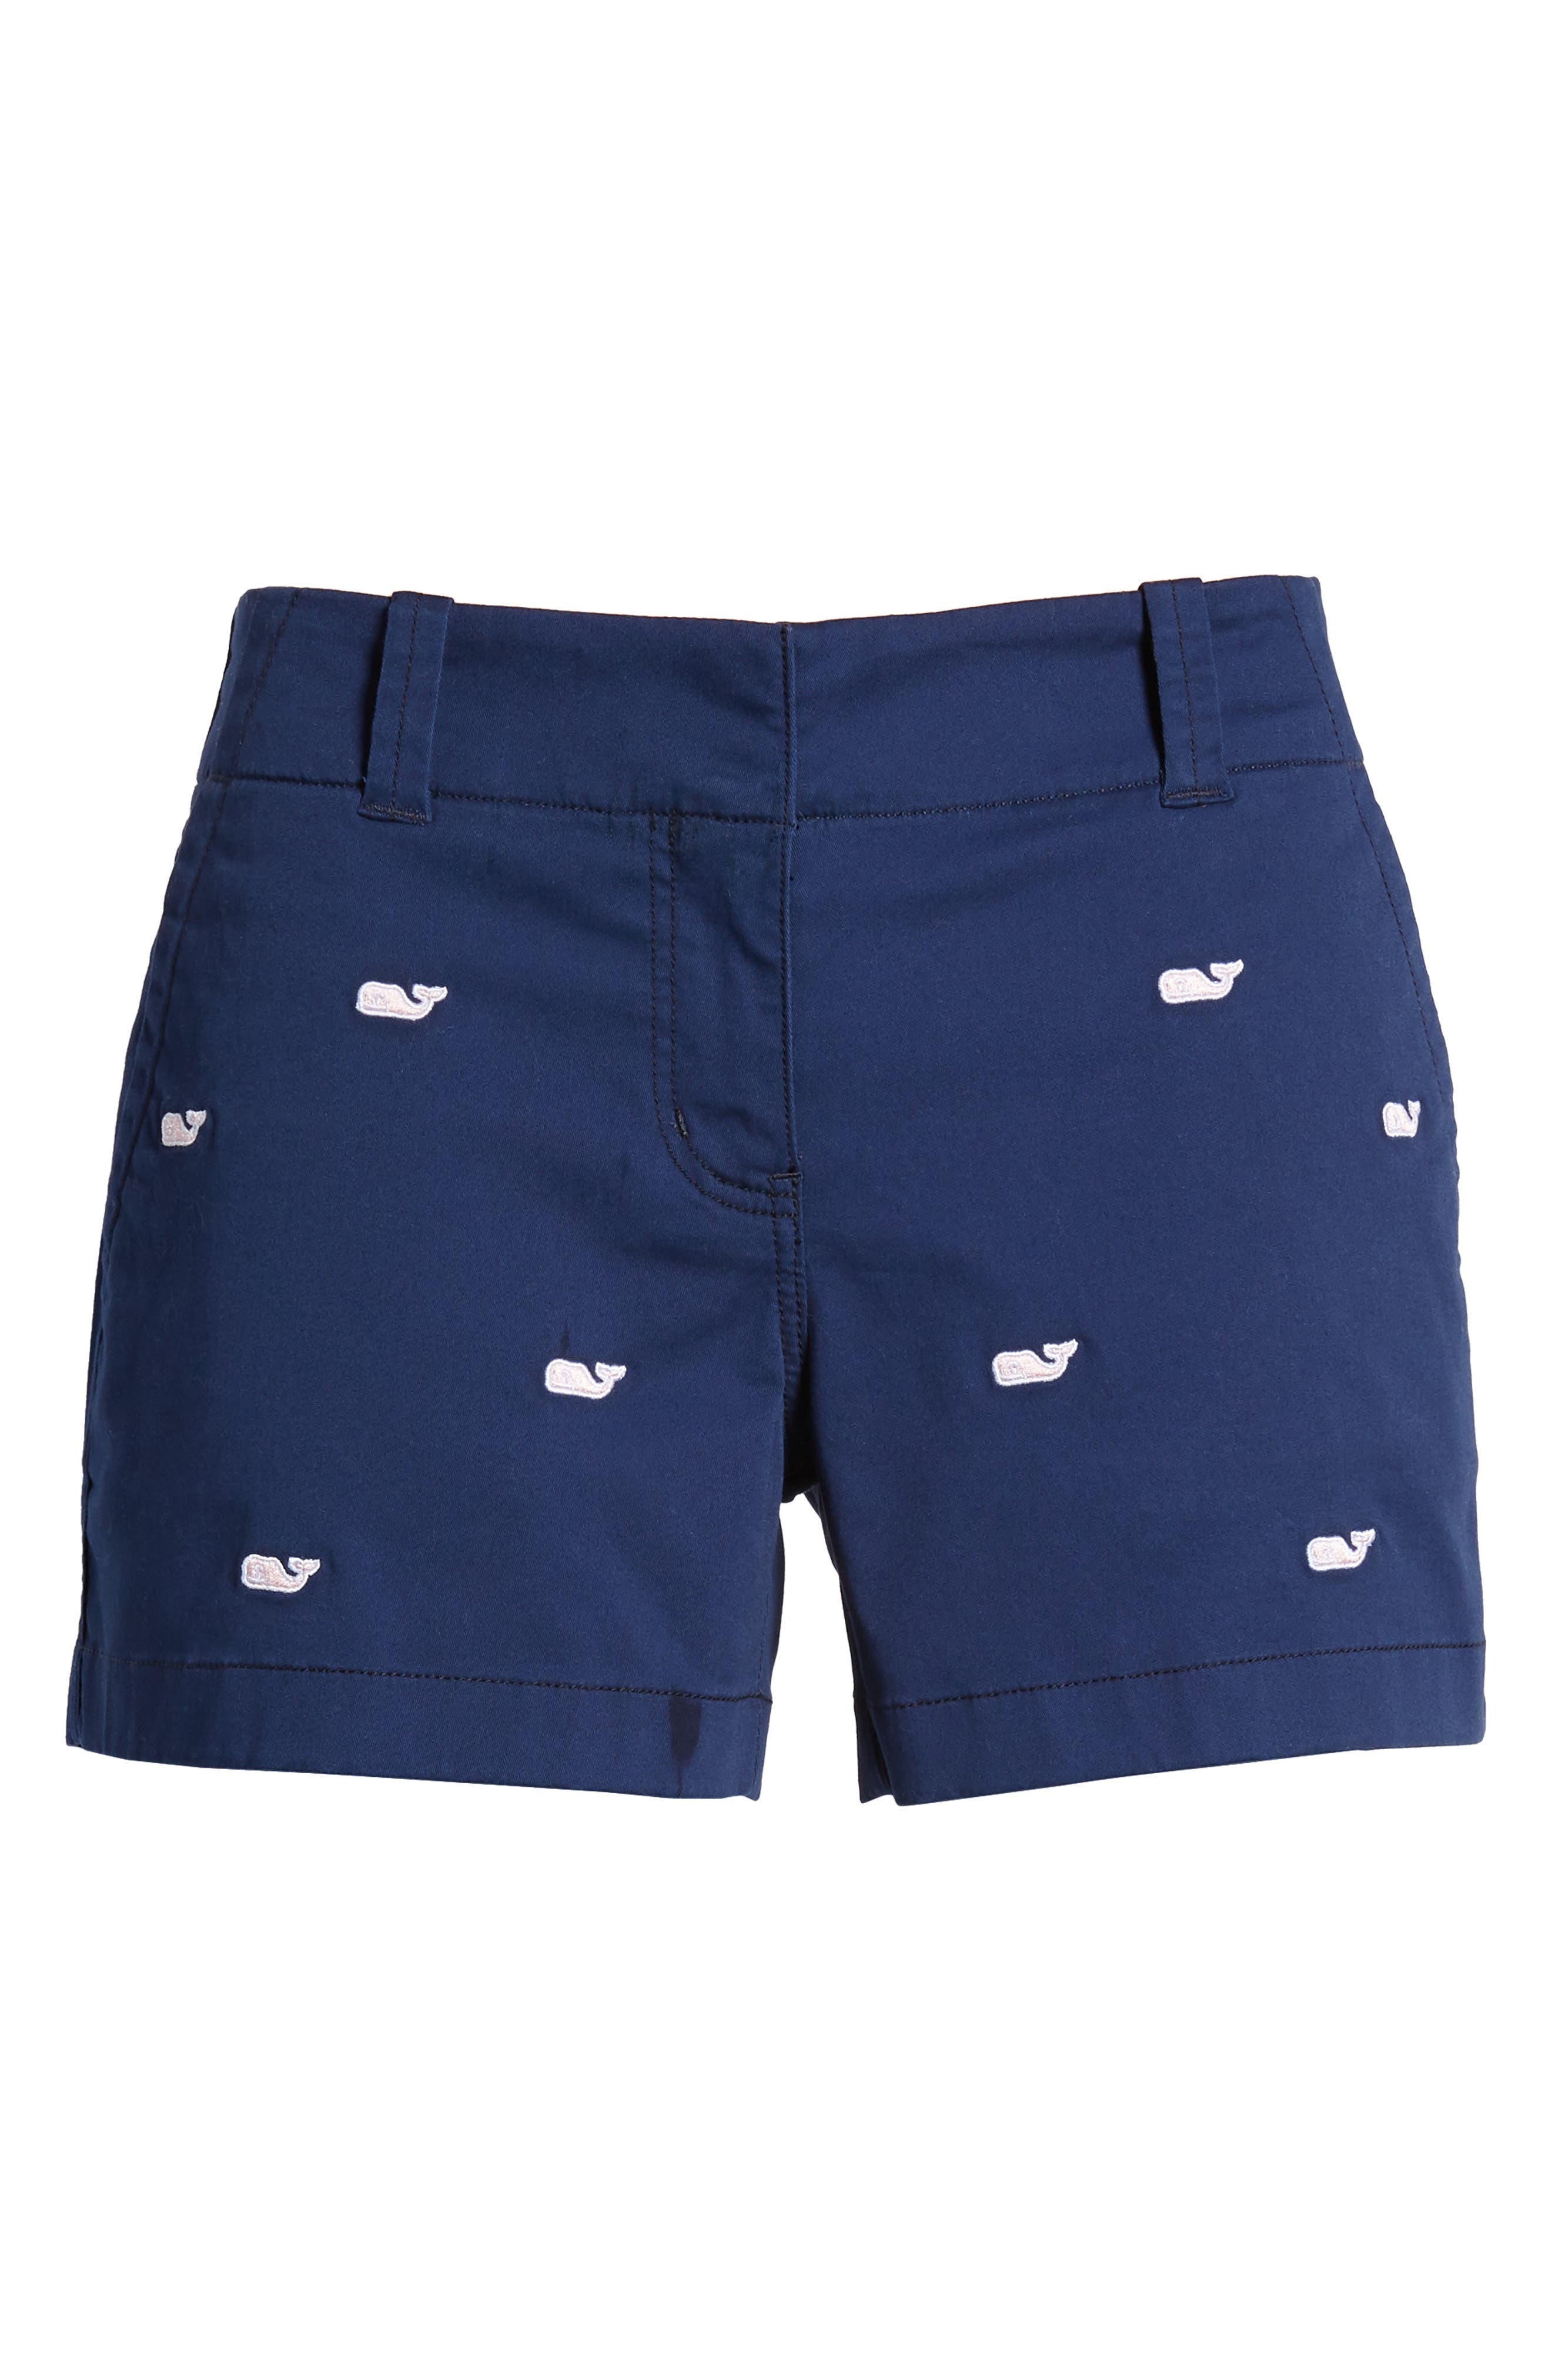 Whale Embroidered Chino Shorts,                             Alternate thumbnail 6, color,                             476